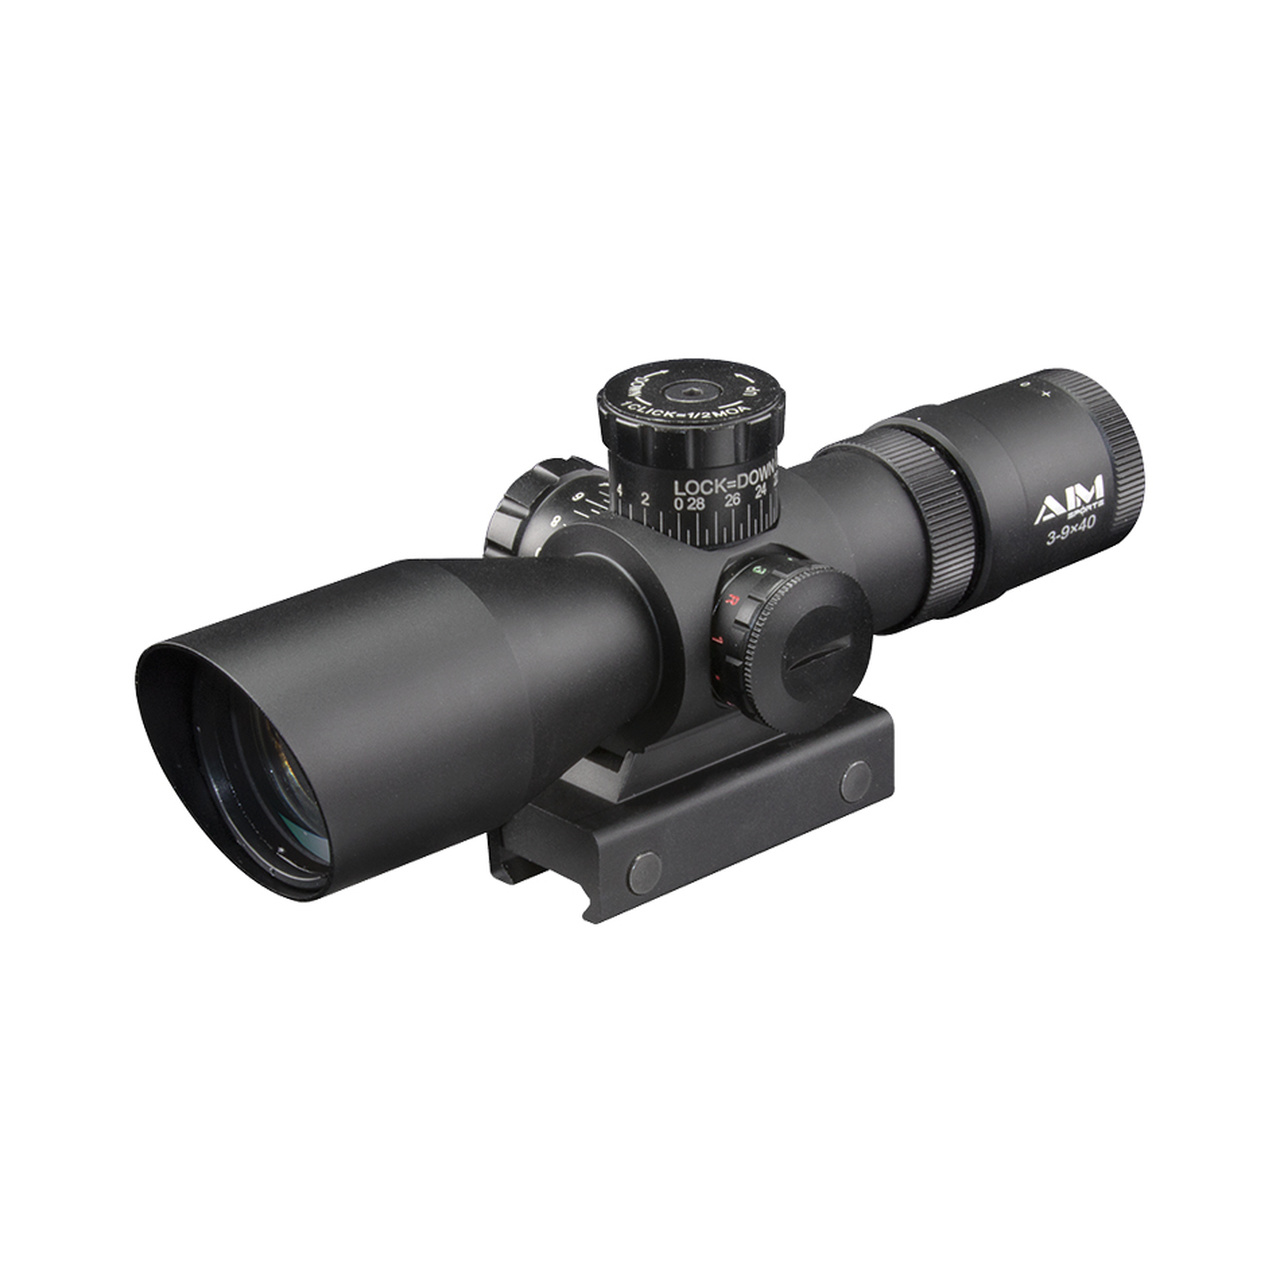 AIM Sports 3-9x40 Tri-Illuminated Reticle Scope